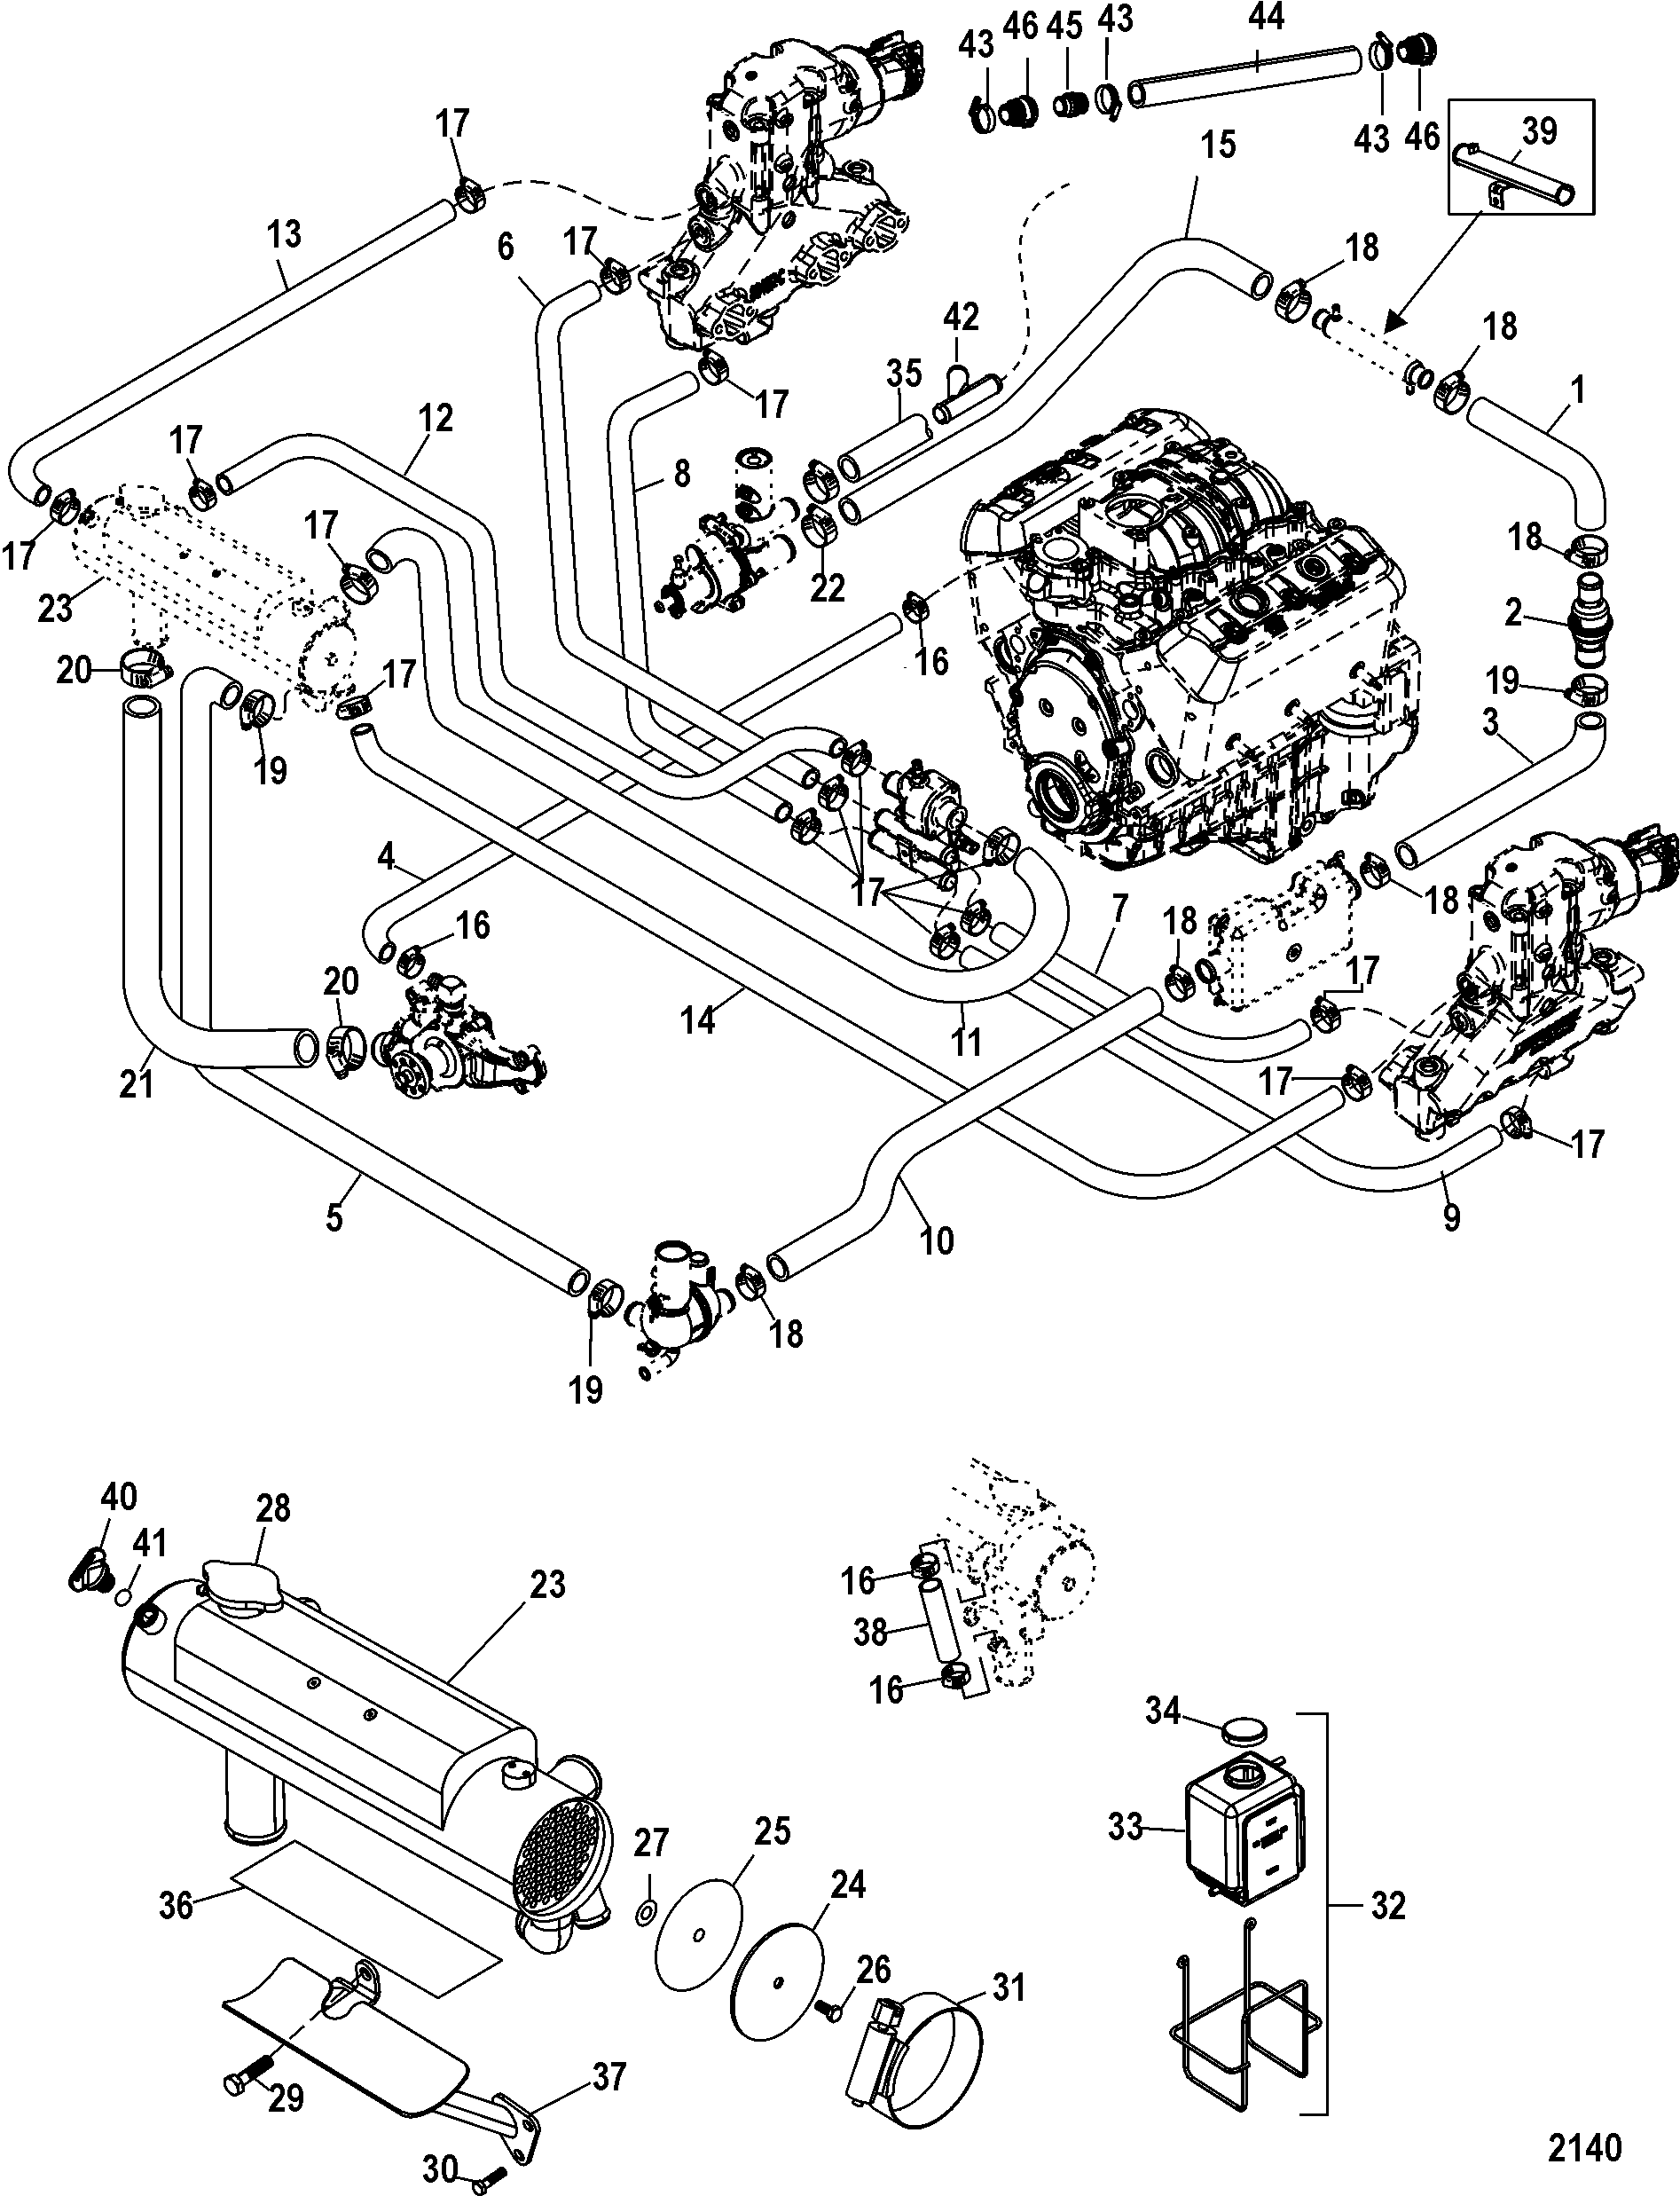 Show product chevy s10 engine parts diagram at ww1 freeautoresponder co